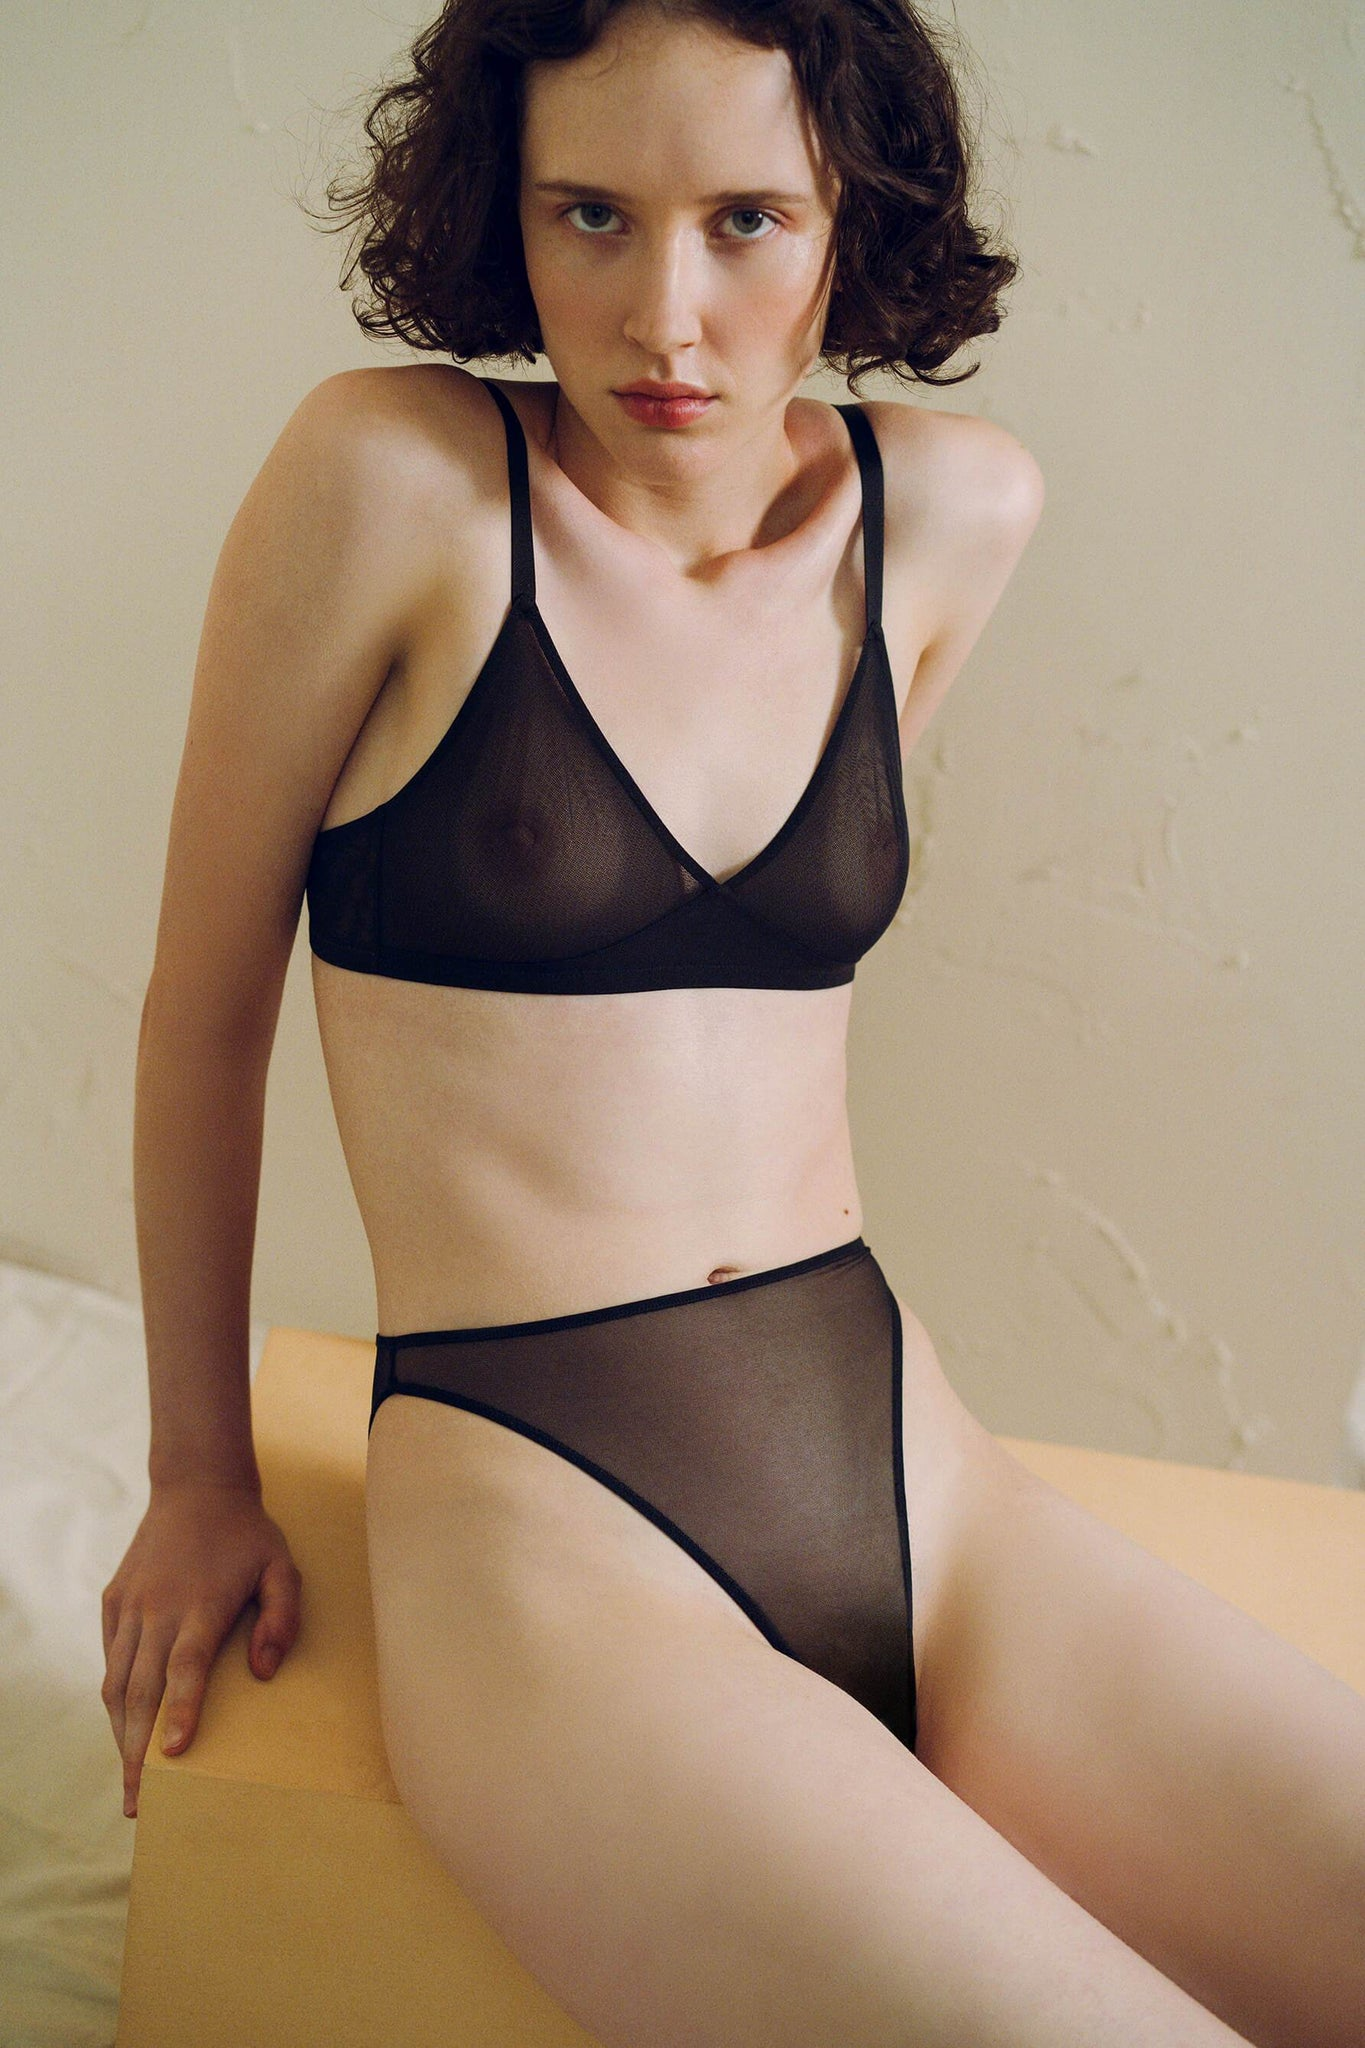 Black Canova 90s High Waist Ouvert Brief from Ethical Lingerie Designer The Great Eros